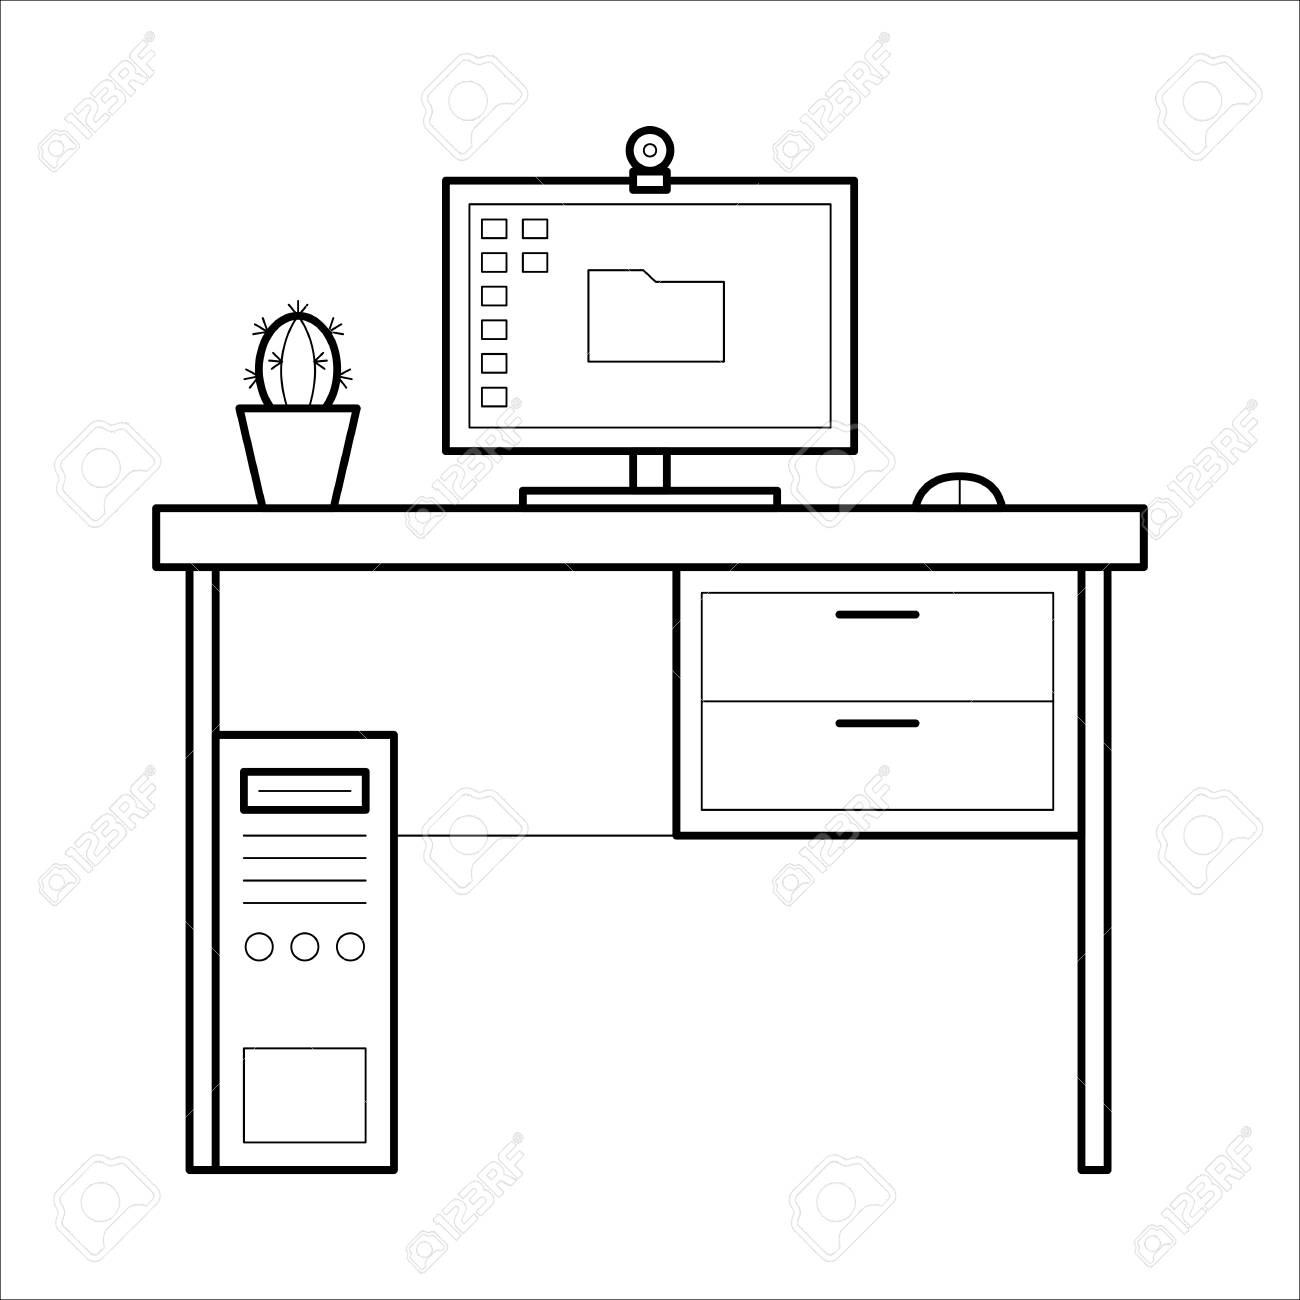 - Computer Desk - Thin Line Style. Royalty Free Cliparts, Vectors